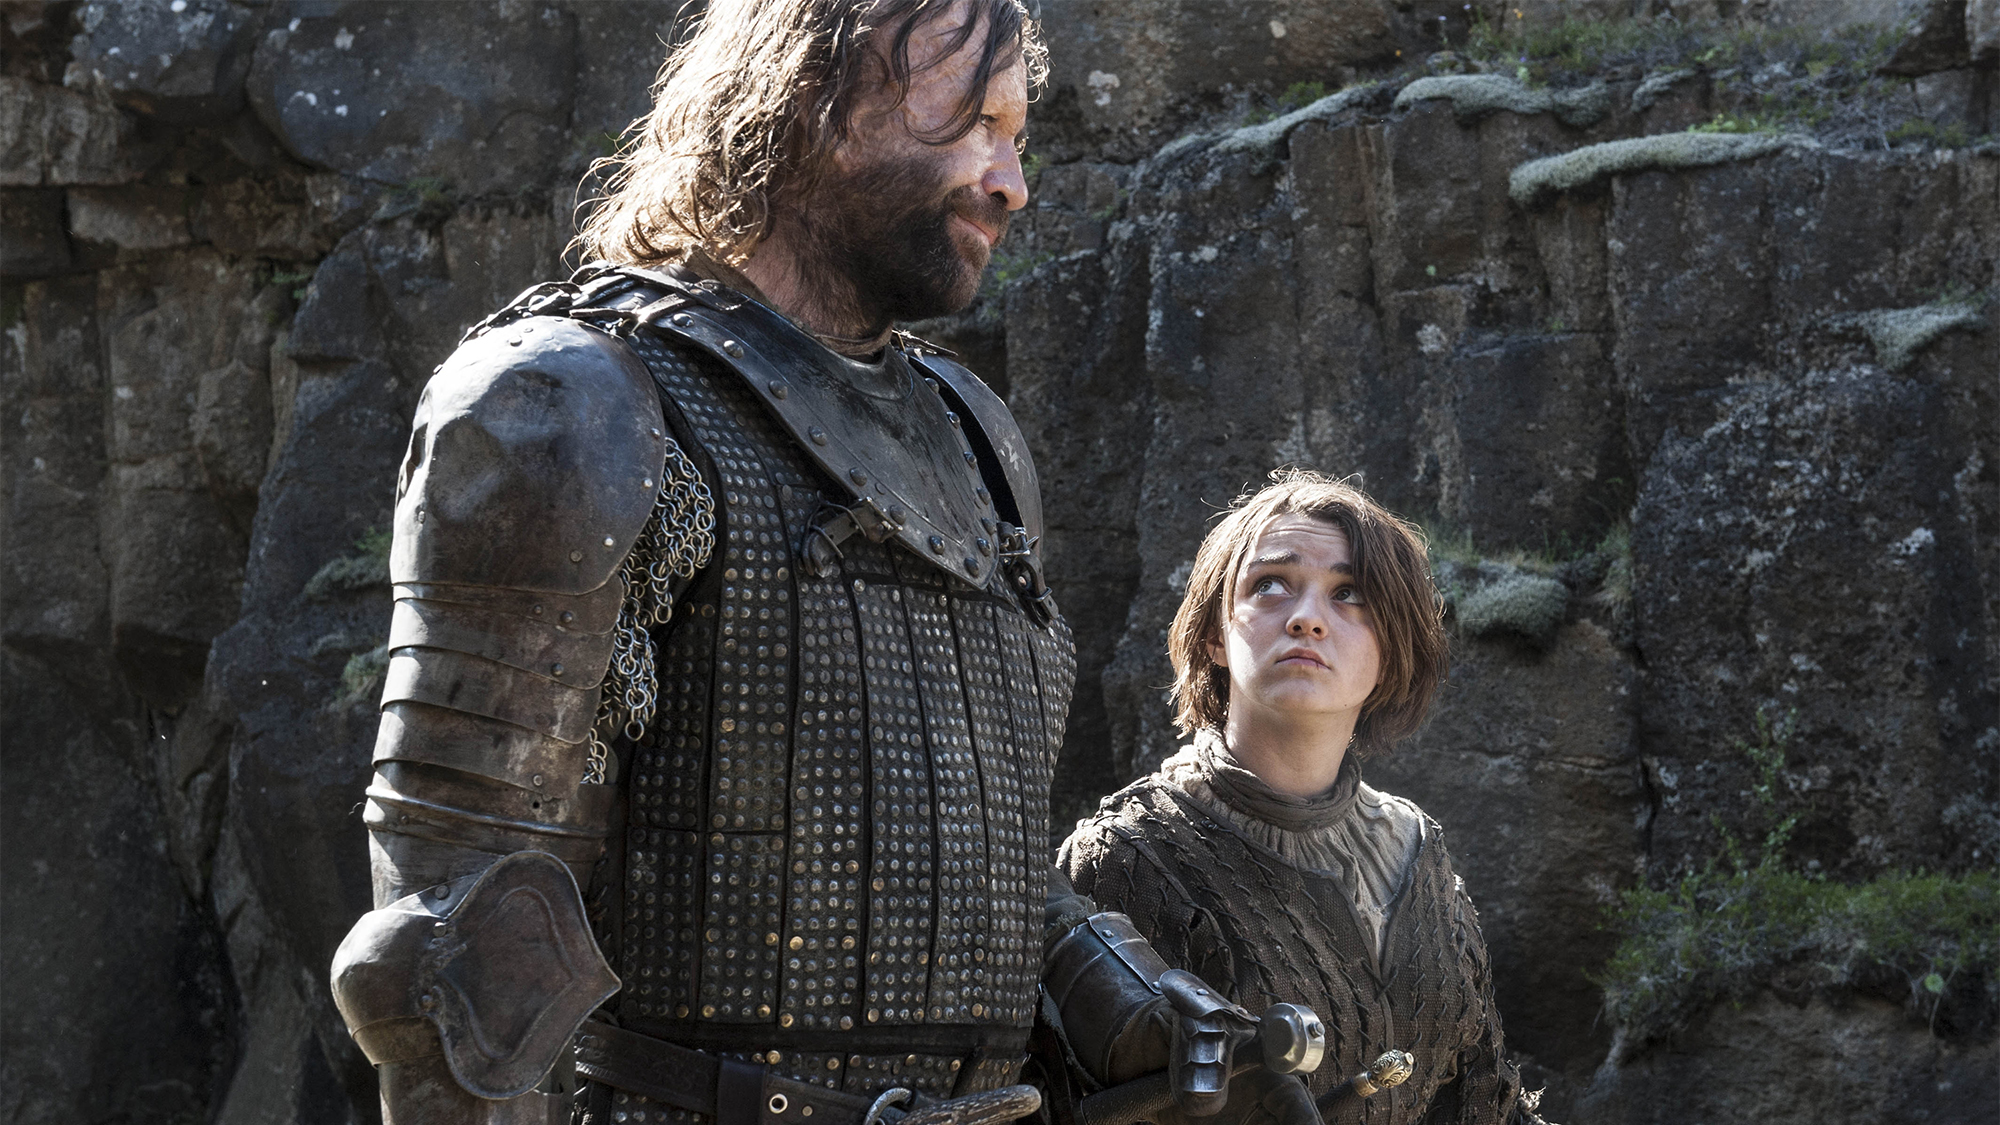 The important details you missed from Arya and Brienne's intense fight advise